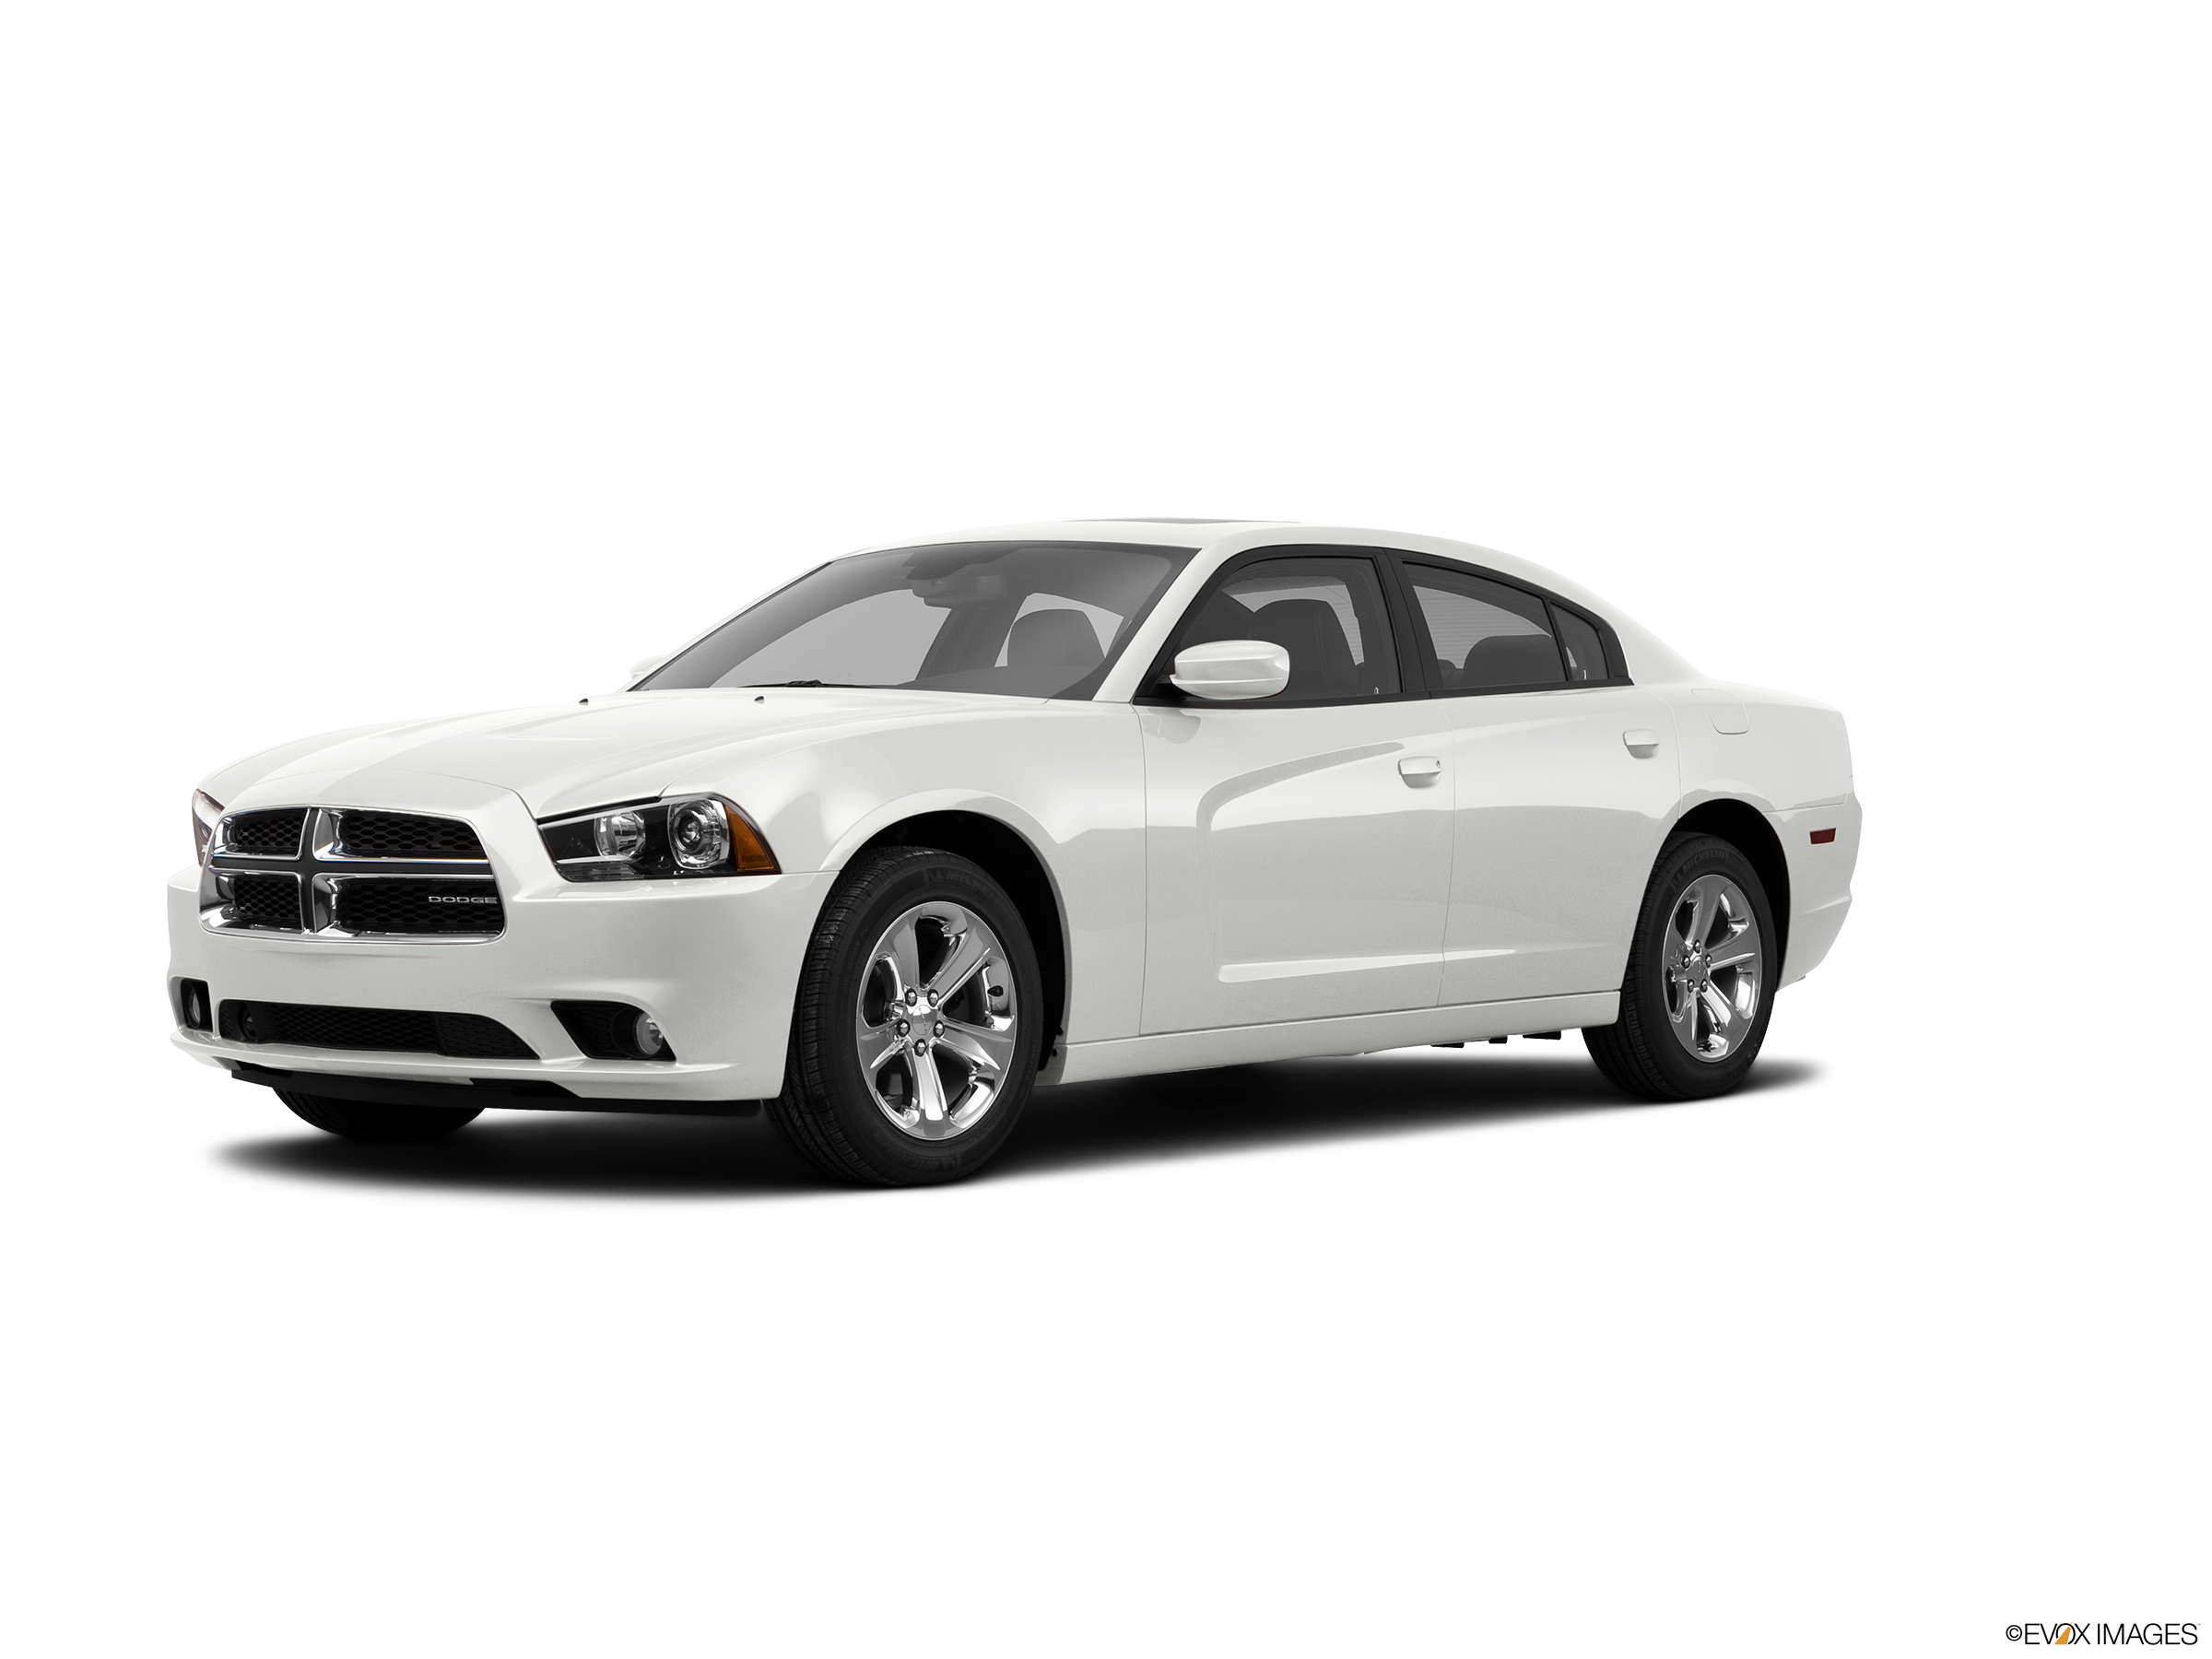 2011 Dodge Charger Values Cars For Sale Kelley Blue Book